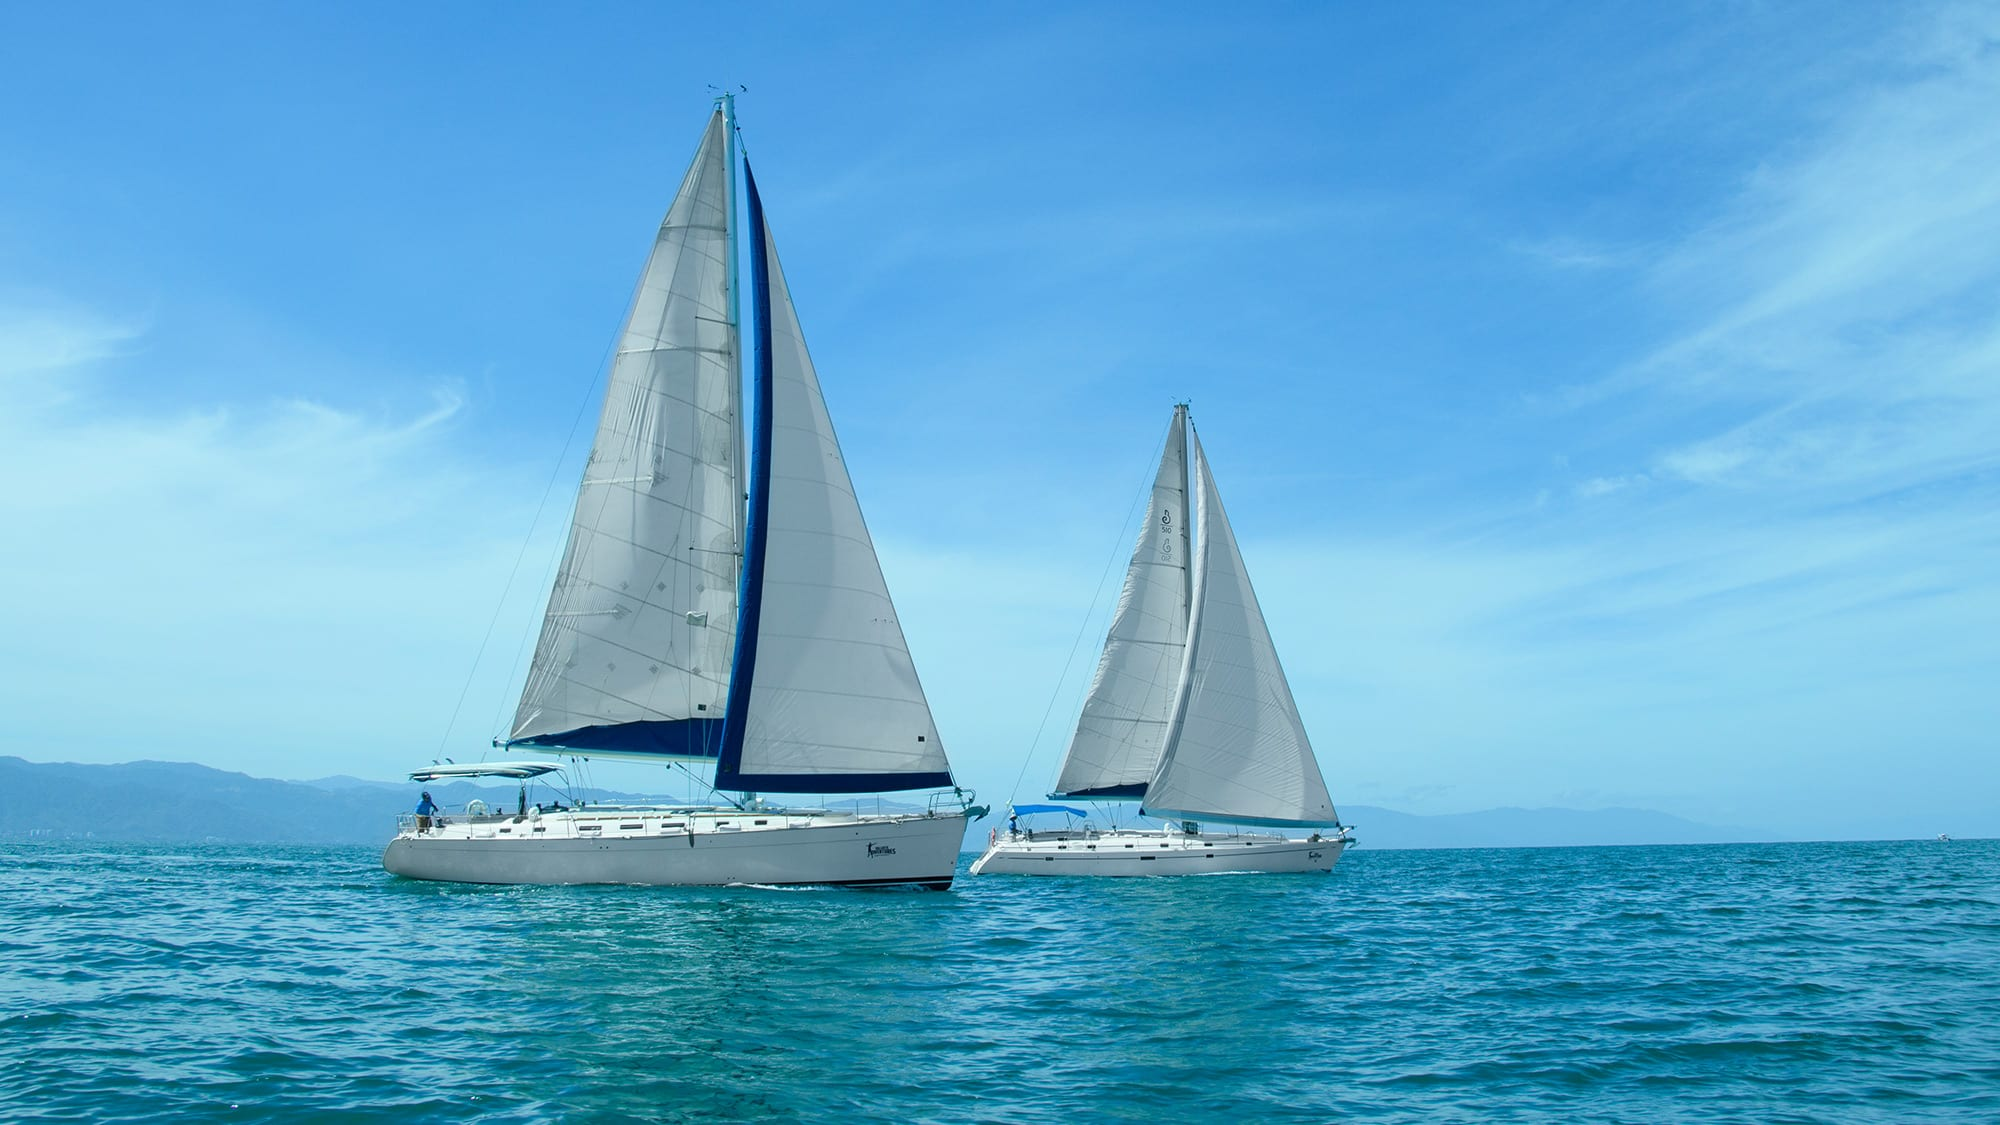 two sailboats on blue water